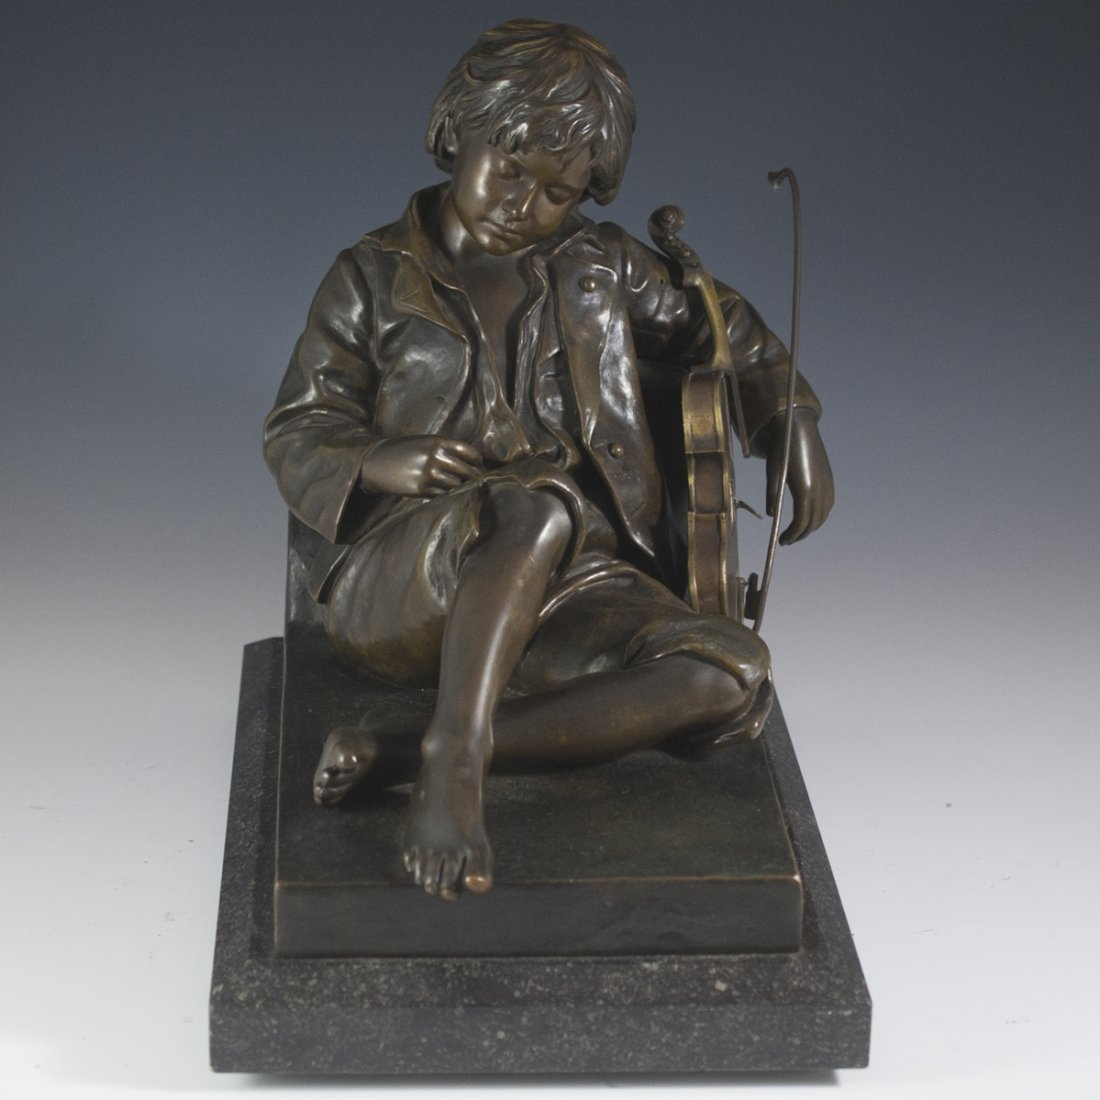 LŽon Tharel (French 1858 - 1902) Susse Foundry Bronze